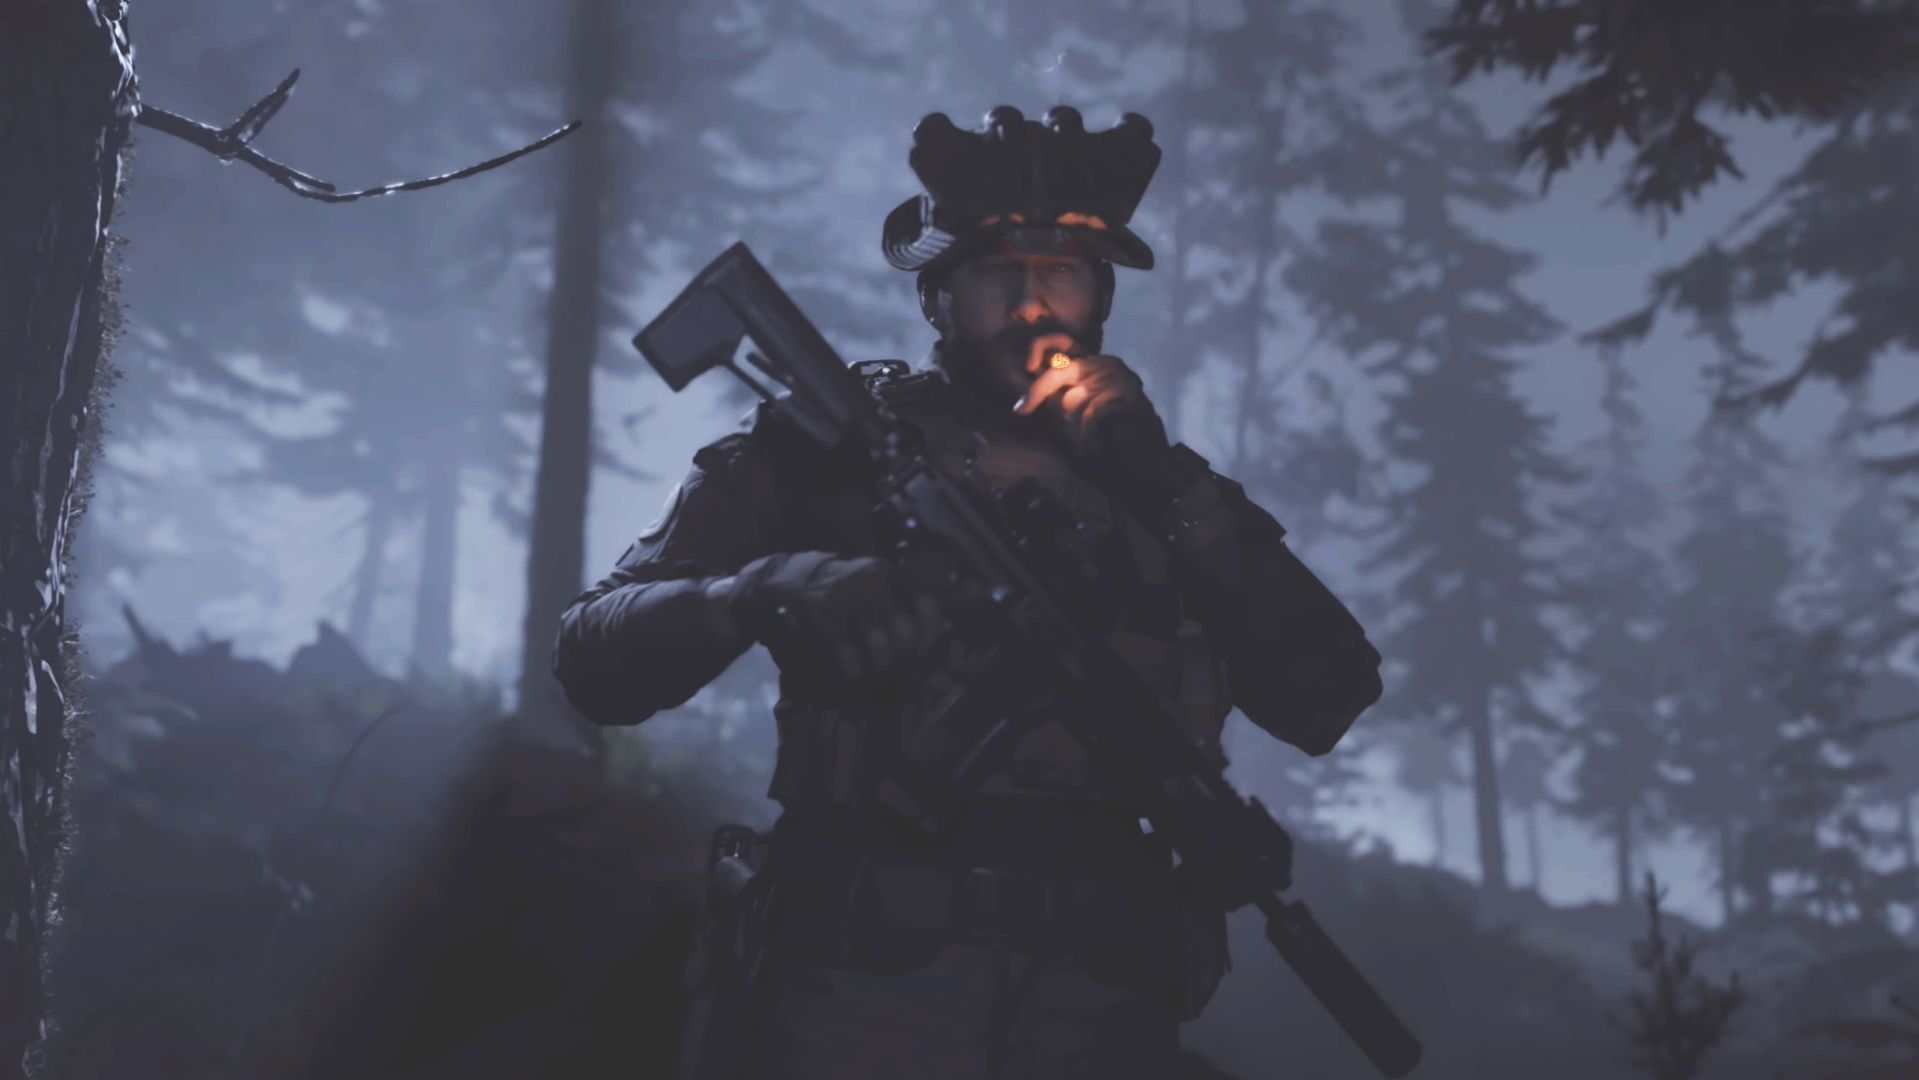 Captain Price Has A New Voice Actor In Call Of Duty Modern Warfare Computergames Gamers Games Gamin In 2020 Call Of Duty Modern Warfare Call Of Duty Warfare